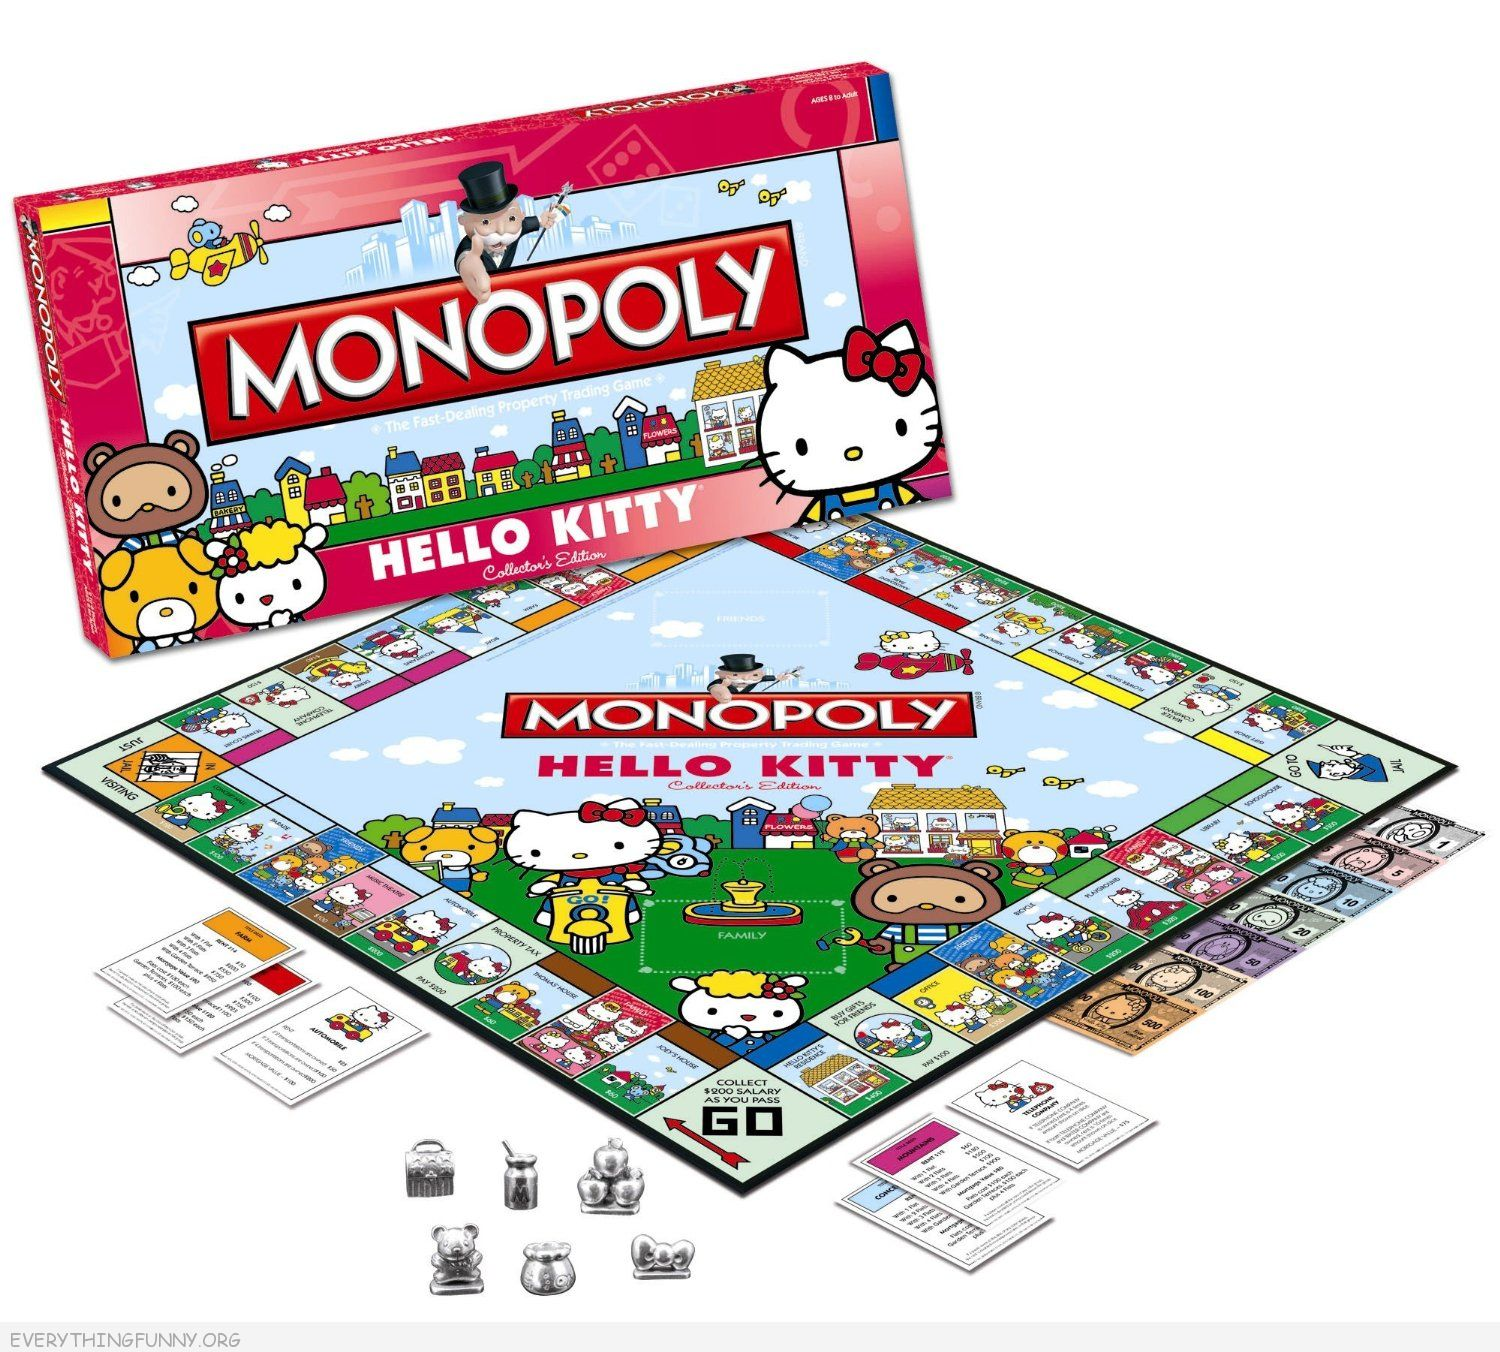 hello kitty monopoly game,Cool monopoly game, special edition monopoly games, collector monopoly games,